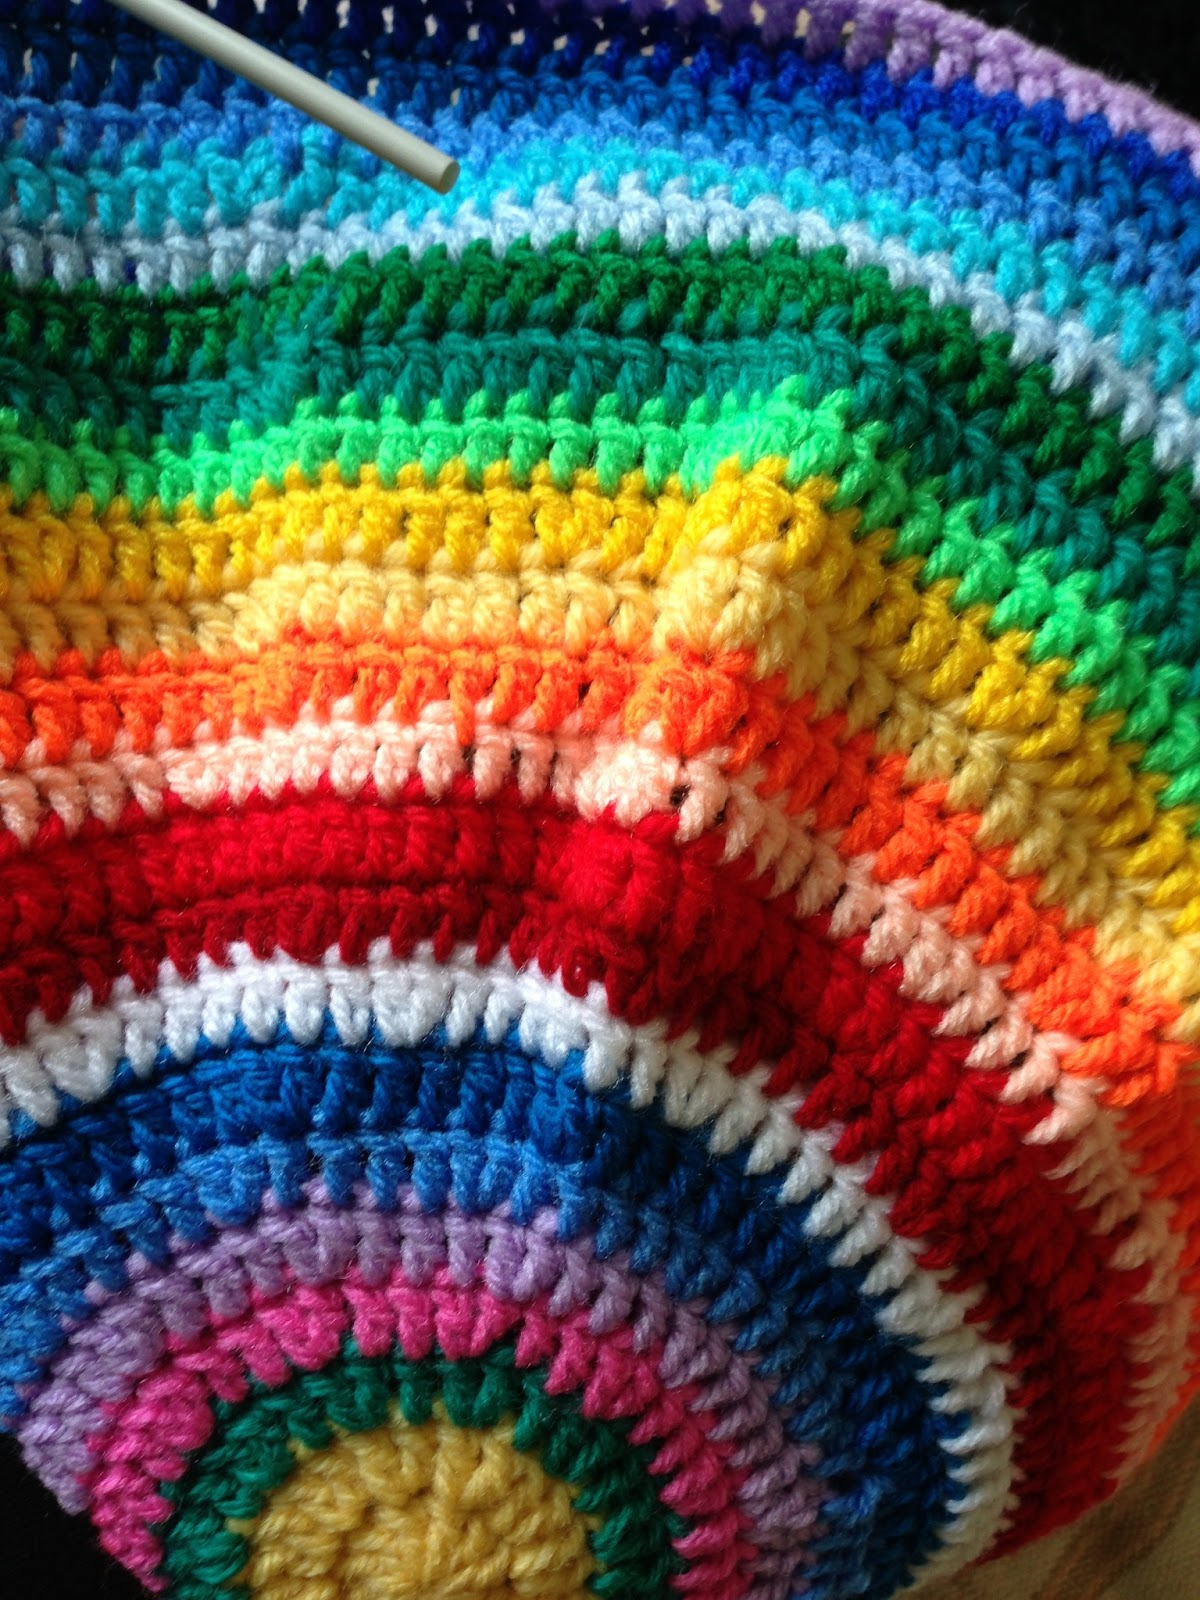 Crochet Bag And Pattern : Heart Rachel : Rainbow Bucket Yarn Bag